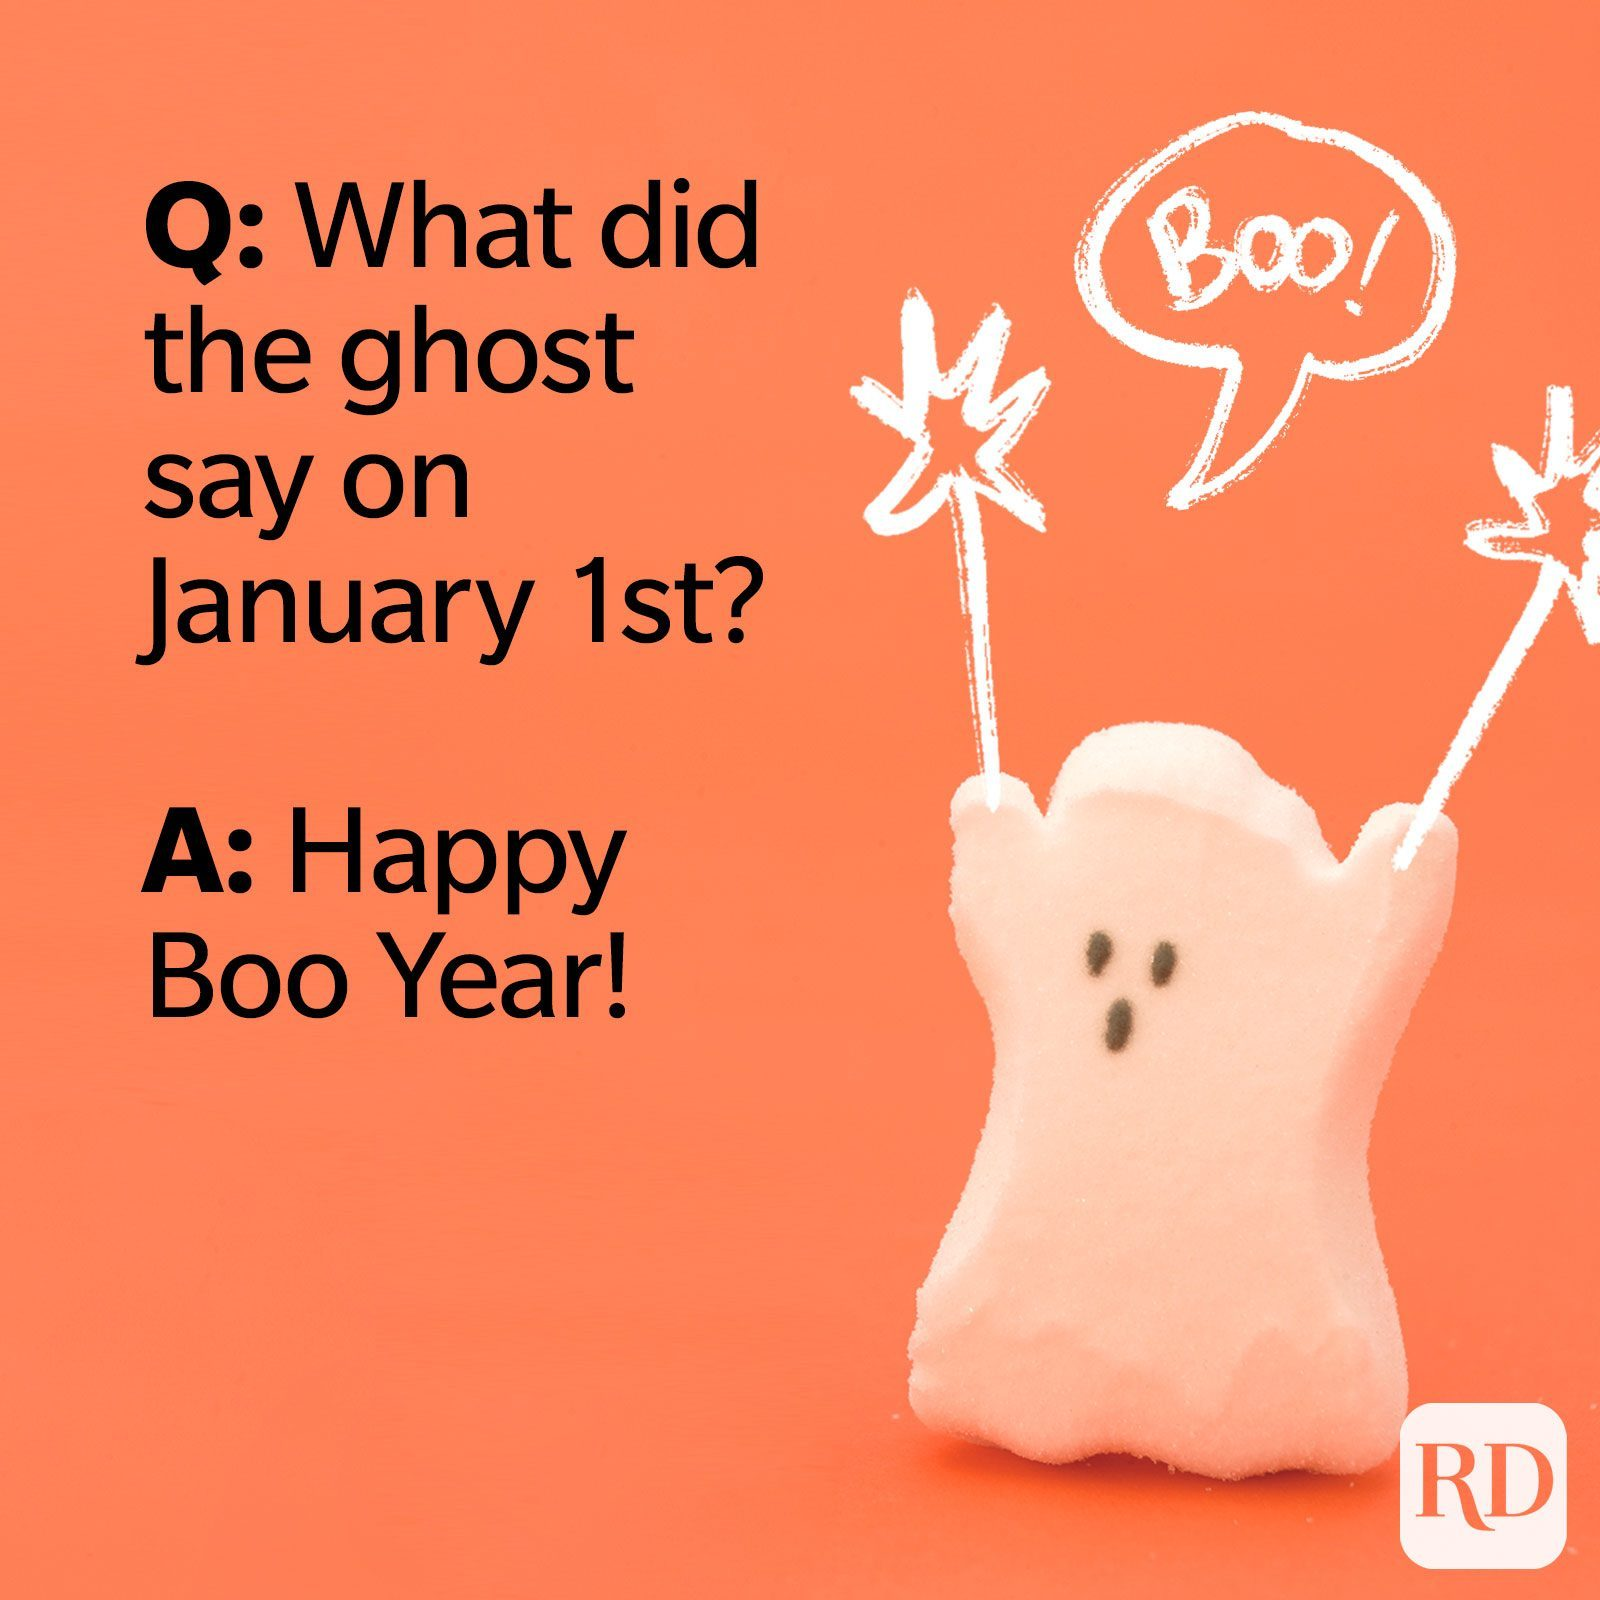 Q: What did the ghost say on January 1st? A: Happy Boo Year.